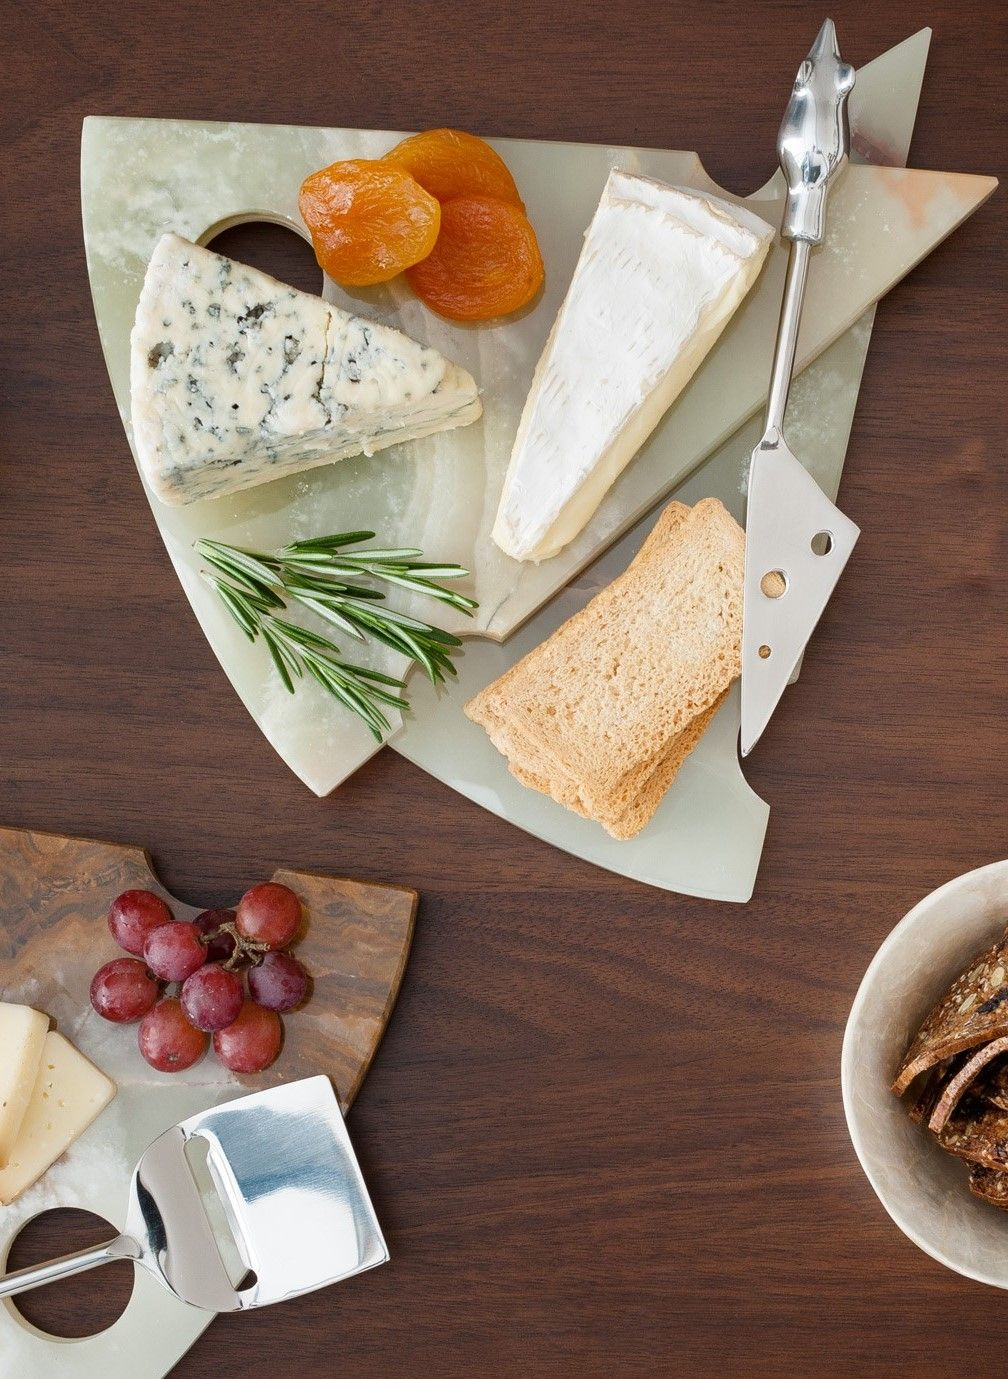 Fair trade onyx cheese board gift ideas for foodies